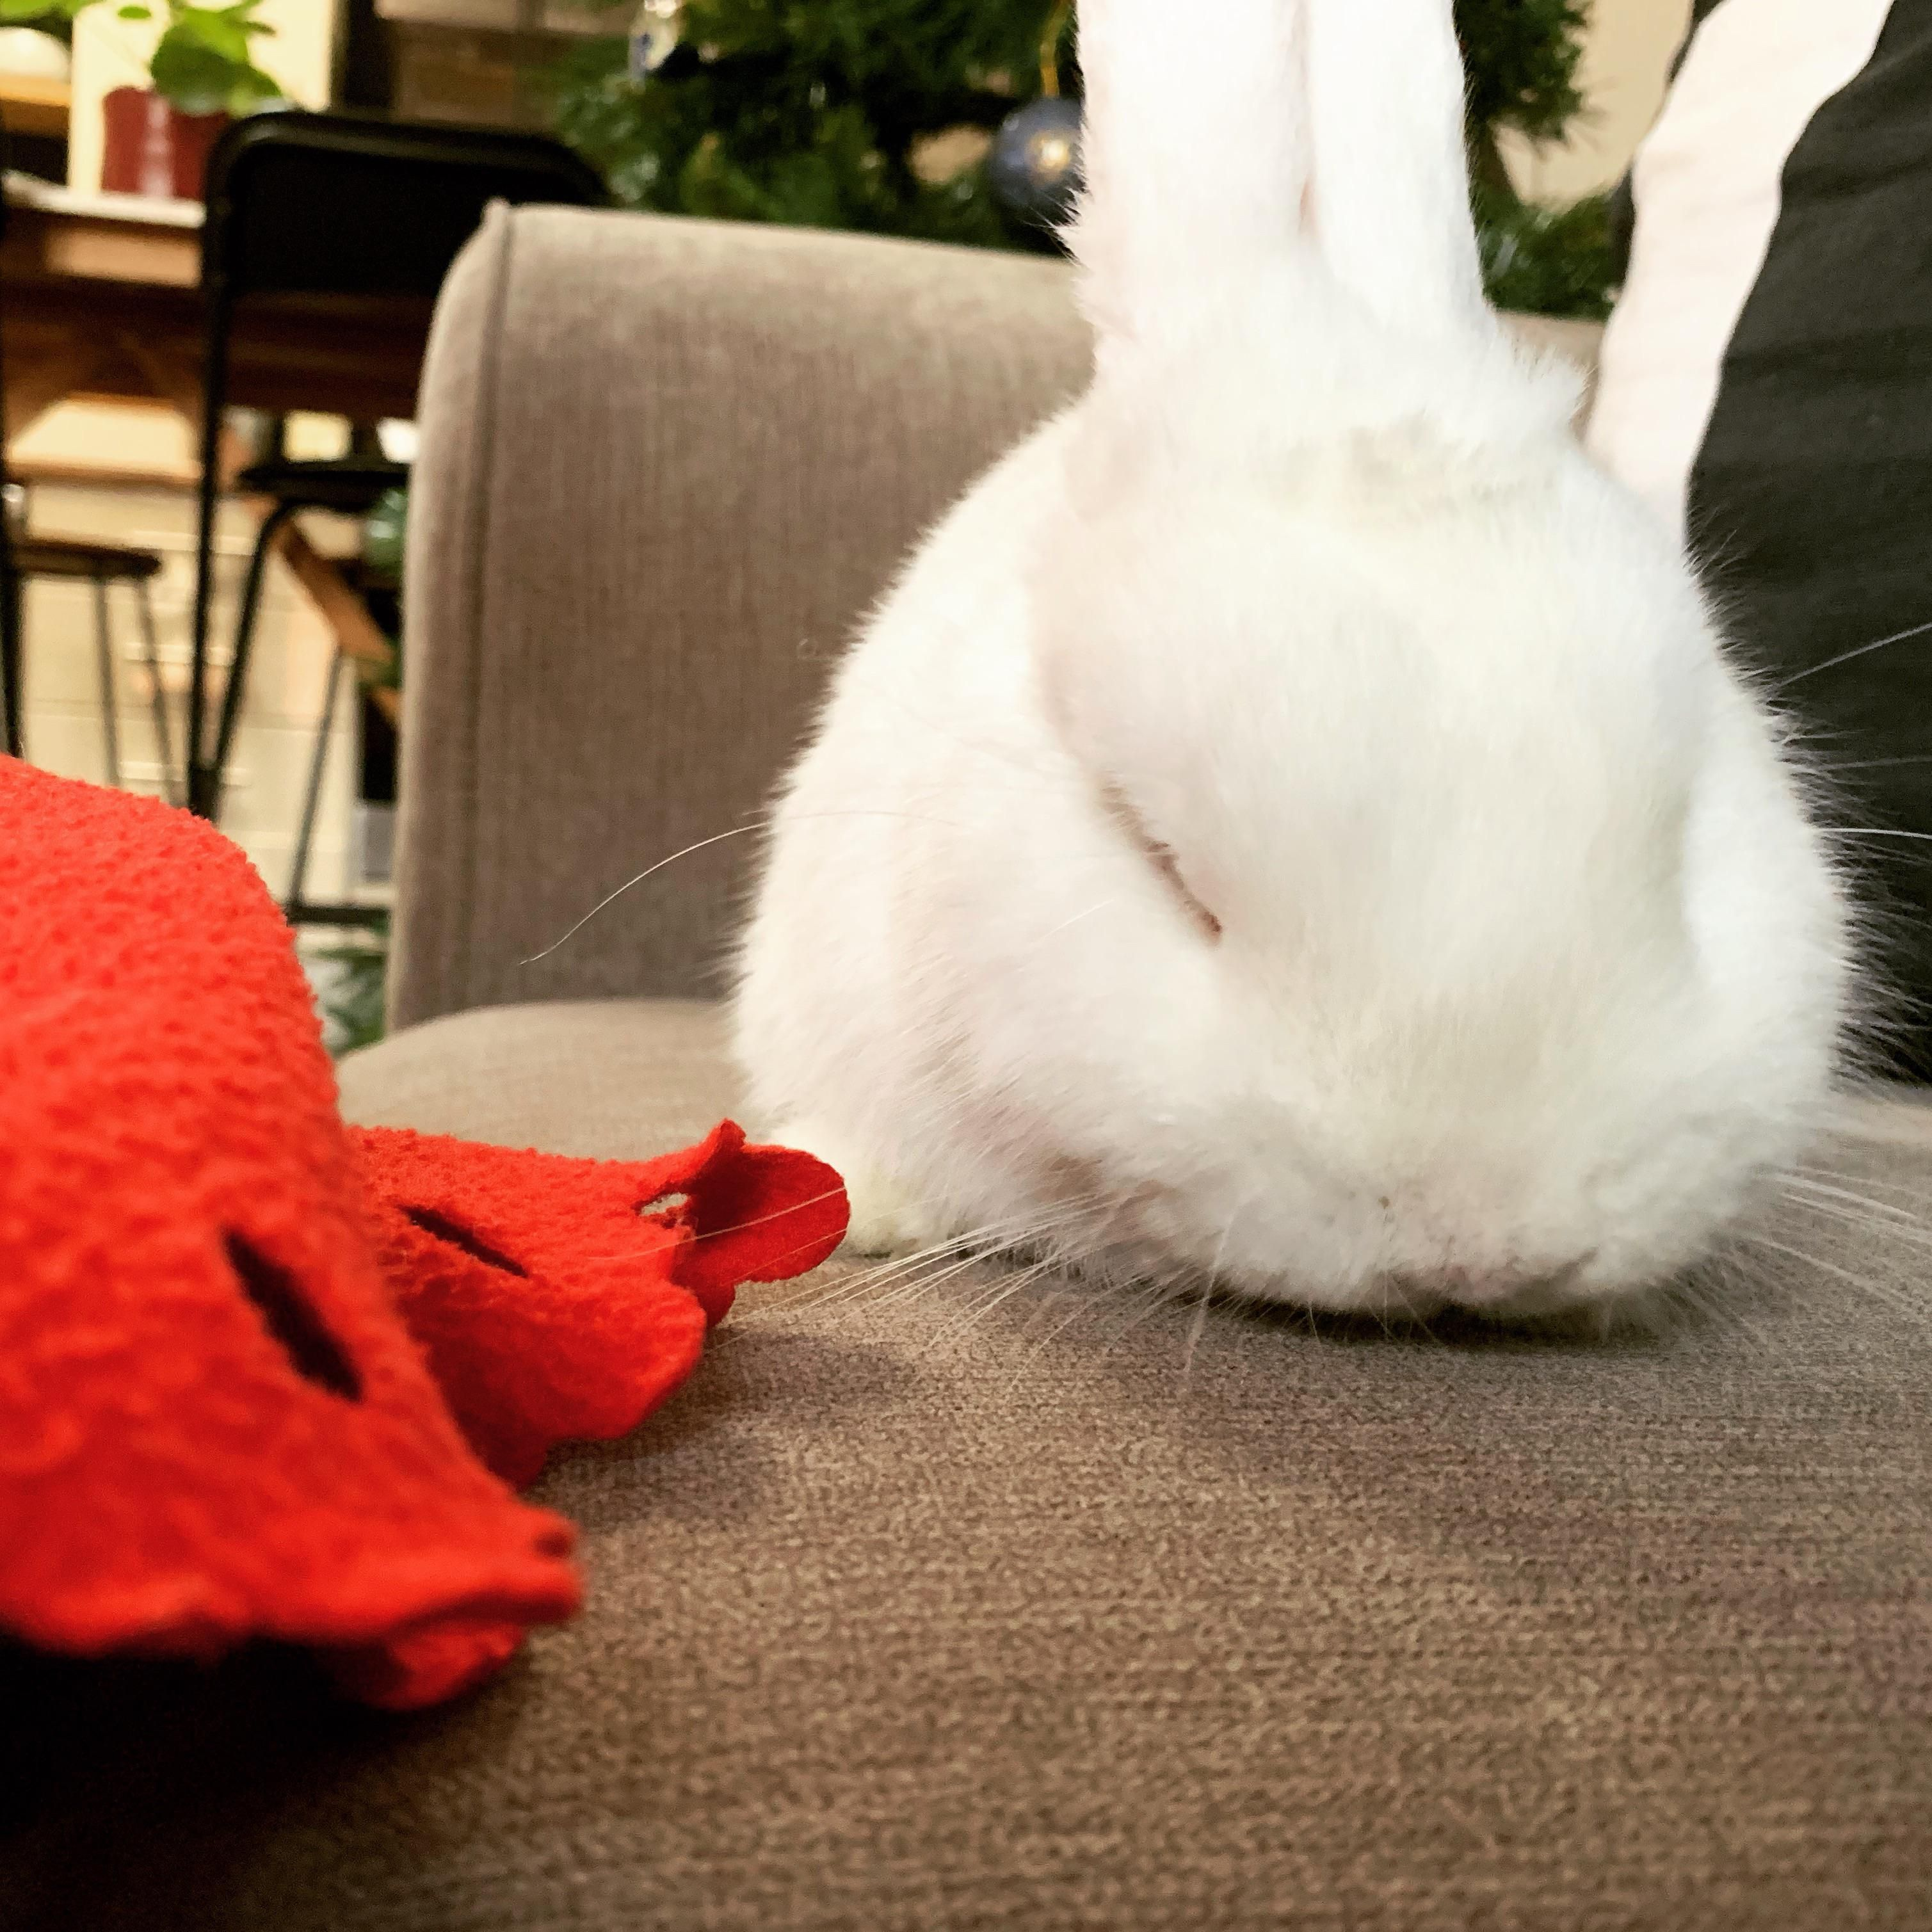 Things You Need To Know Before Buying A Rabbit Rabbit Care Rabbit Playpen Rabbit Behavior